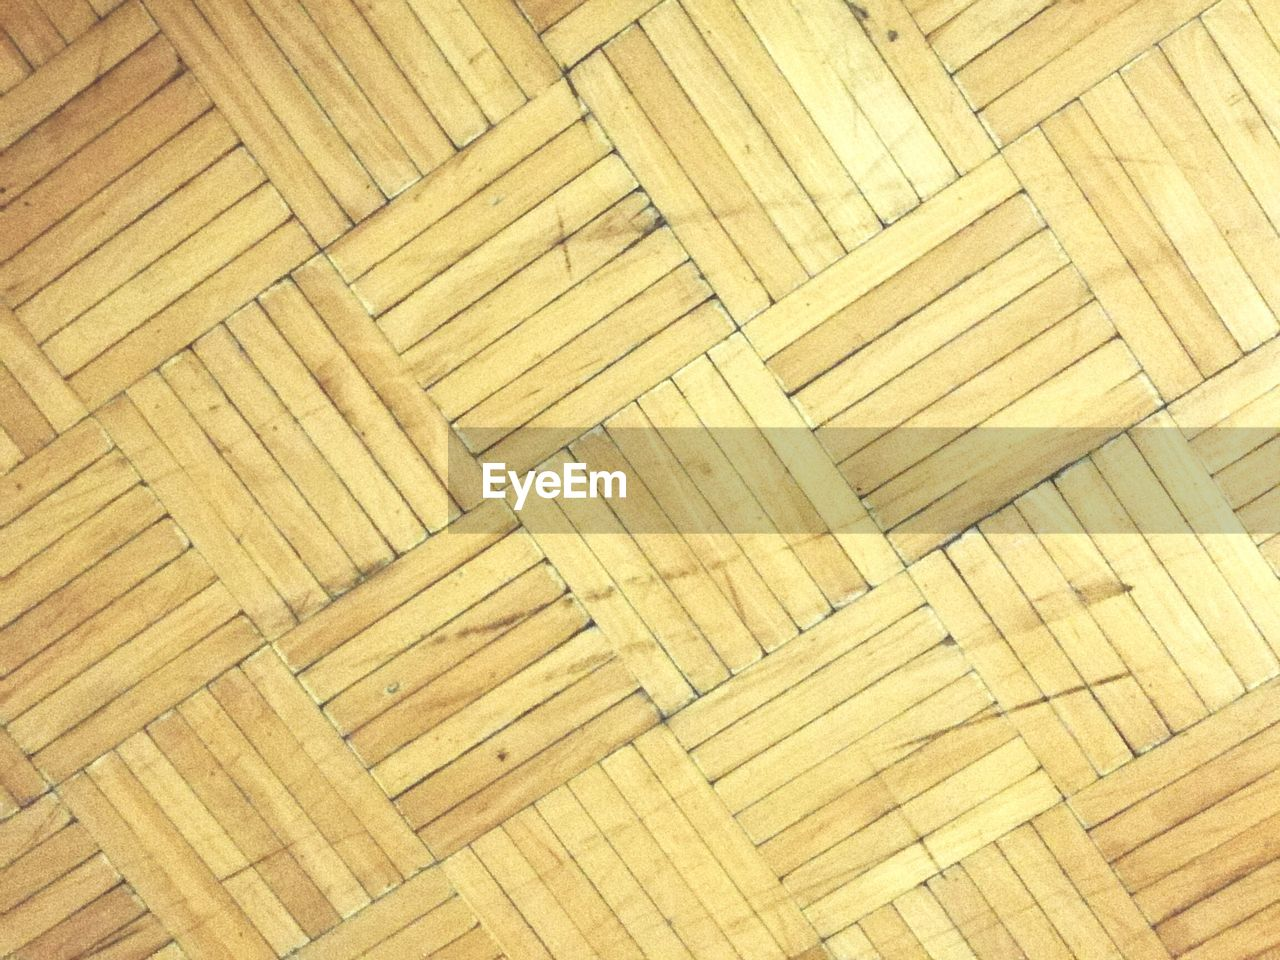 backgrounds, pattern, full frame, textured, wood - material, hardwood floor, bamboo - material, no people, indoors, close-up, day